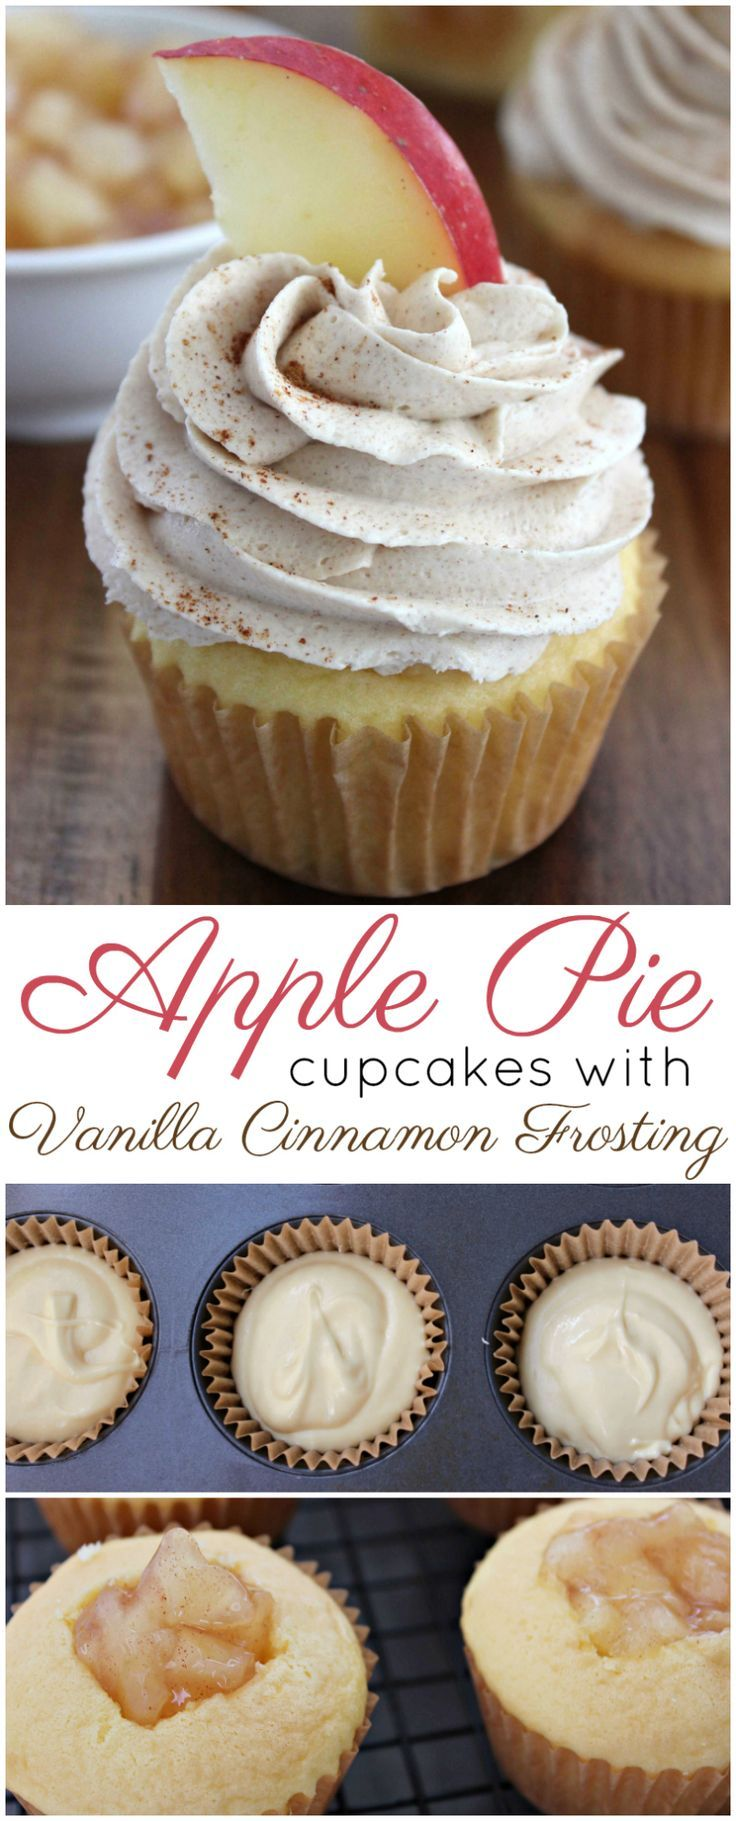 Apple Pie Cupcakes with Vanilla Cinnamon Frosting